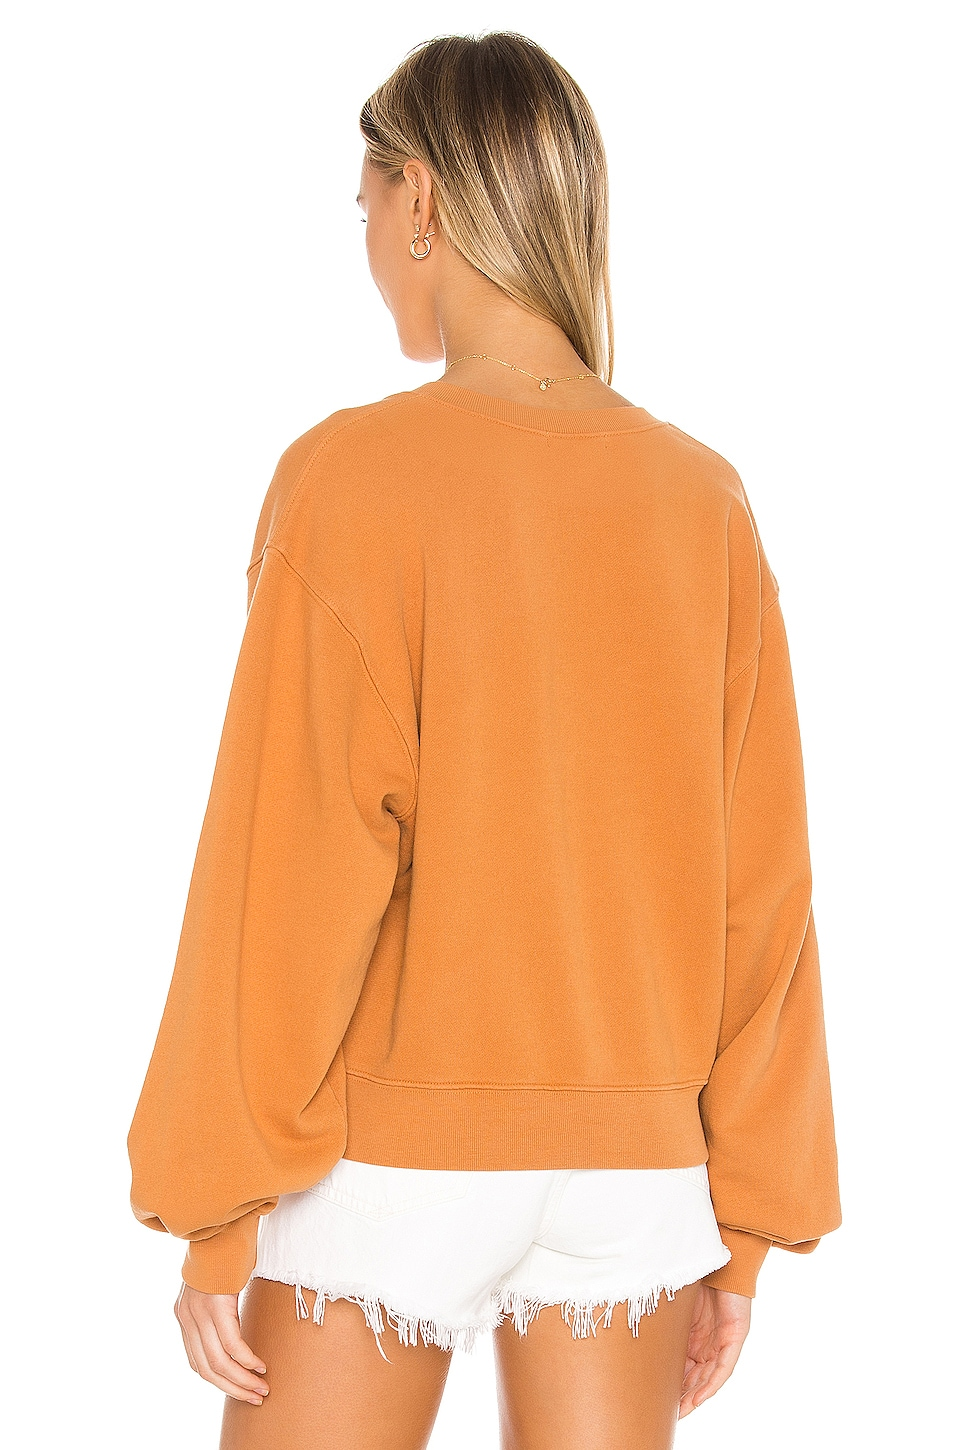 V Neck Balloon Sleeve Sweatshirt, view 3, click to view large image.